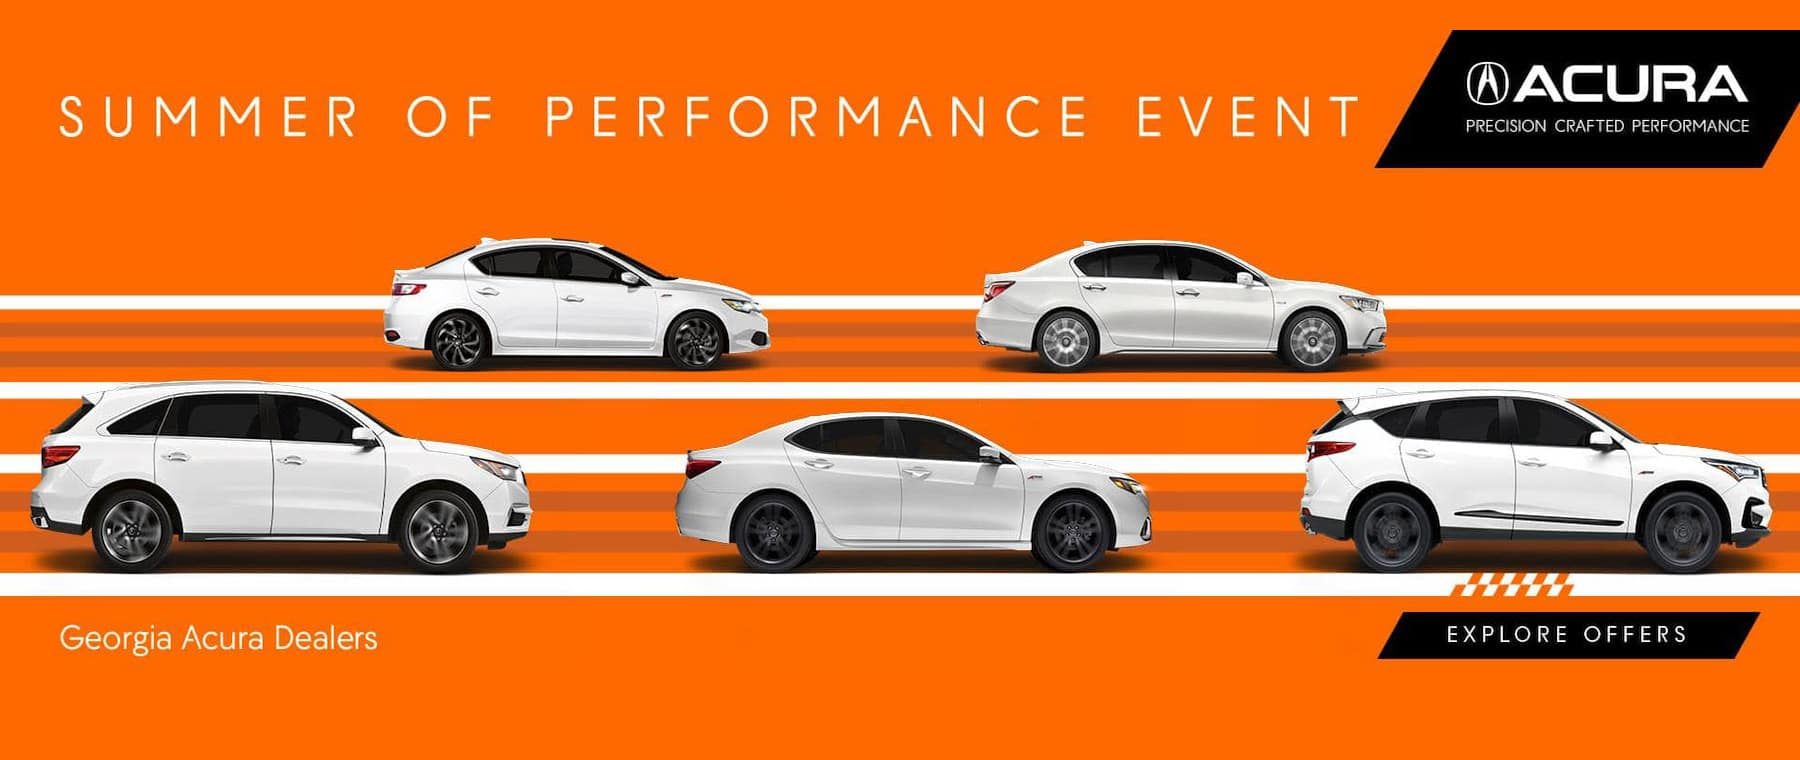 Acura-Summer-of-Performance-Event-Video